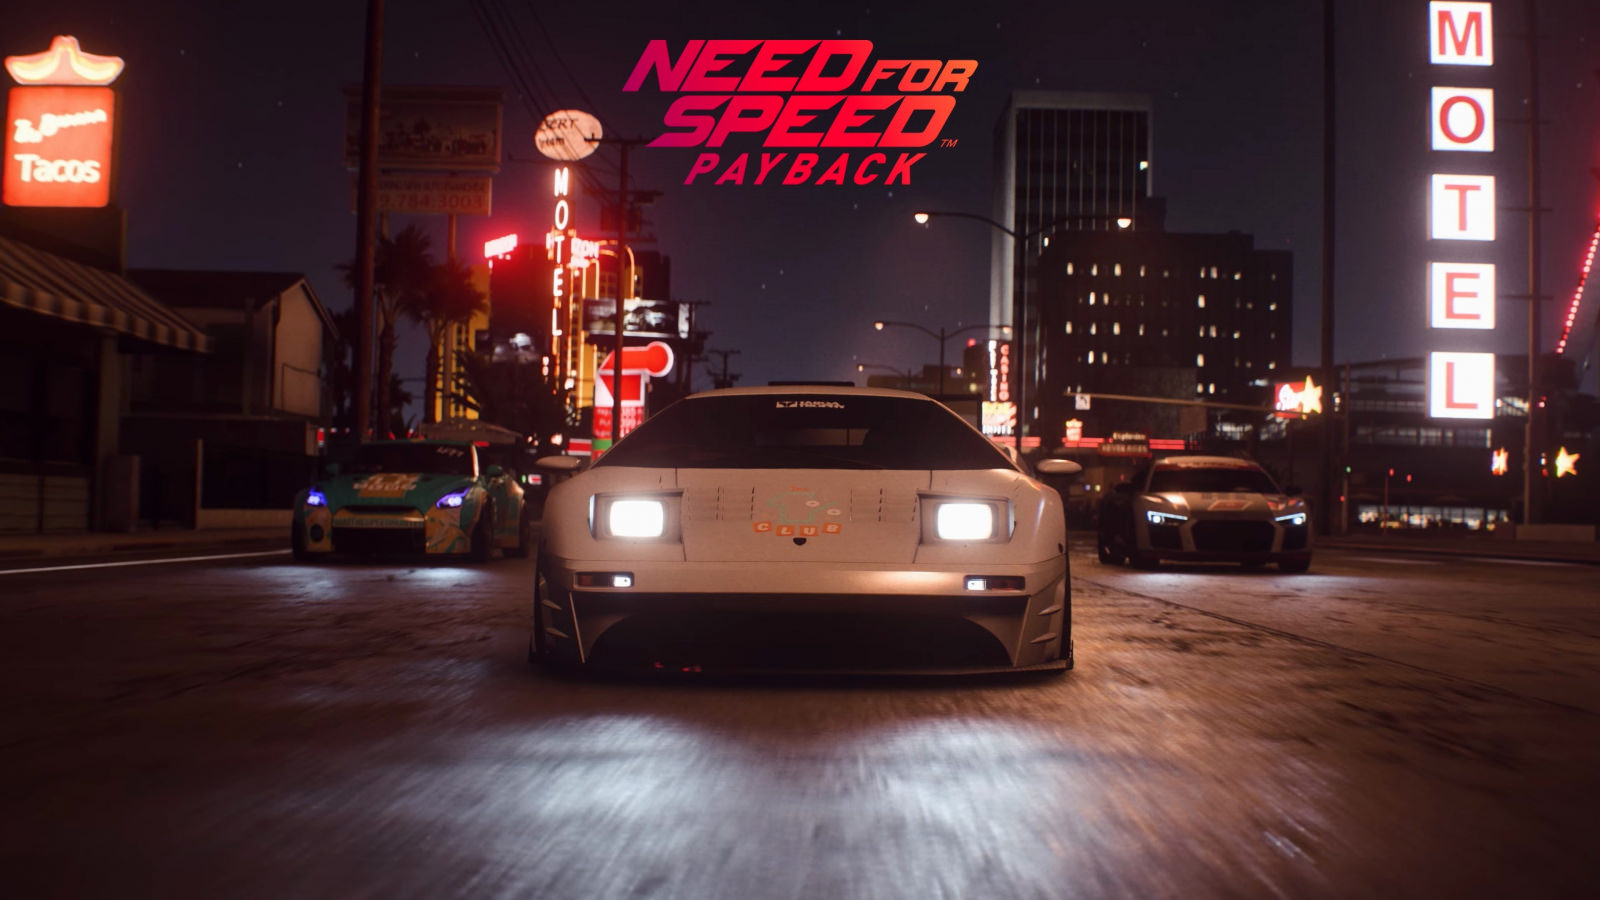 25+] Need For Speed Payback Wallpapers on WallpaperSafari